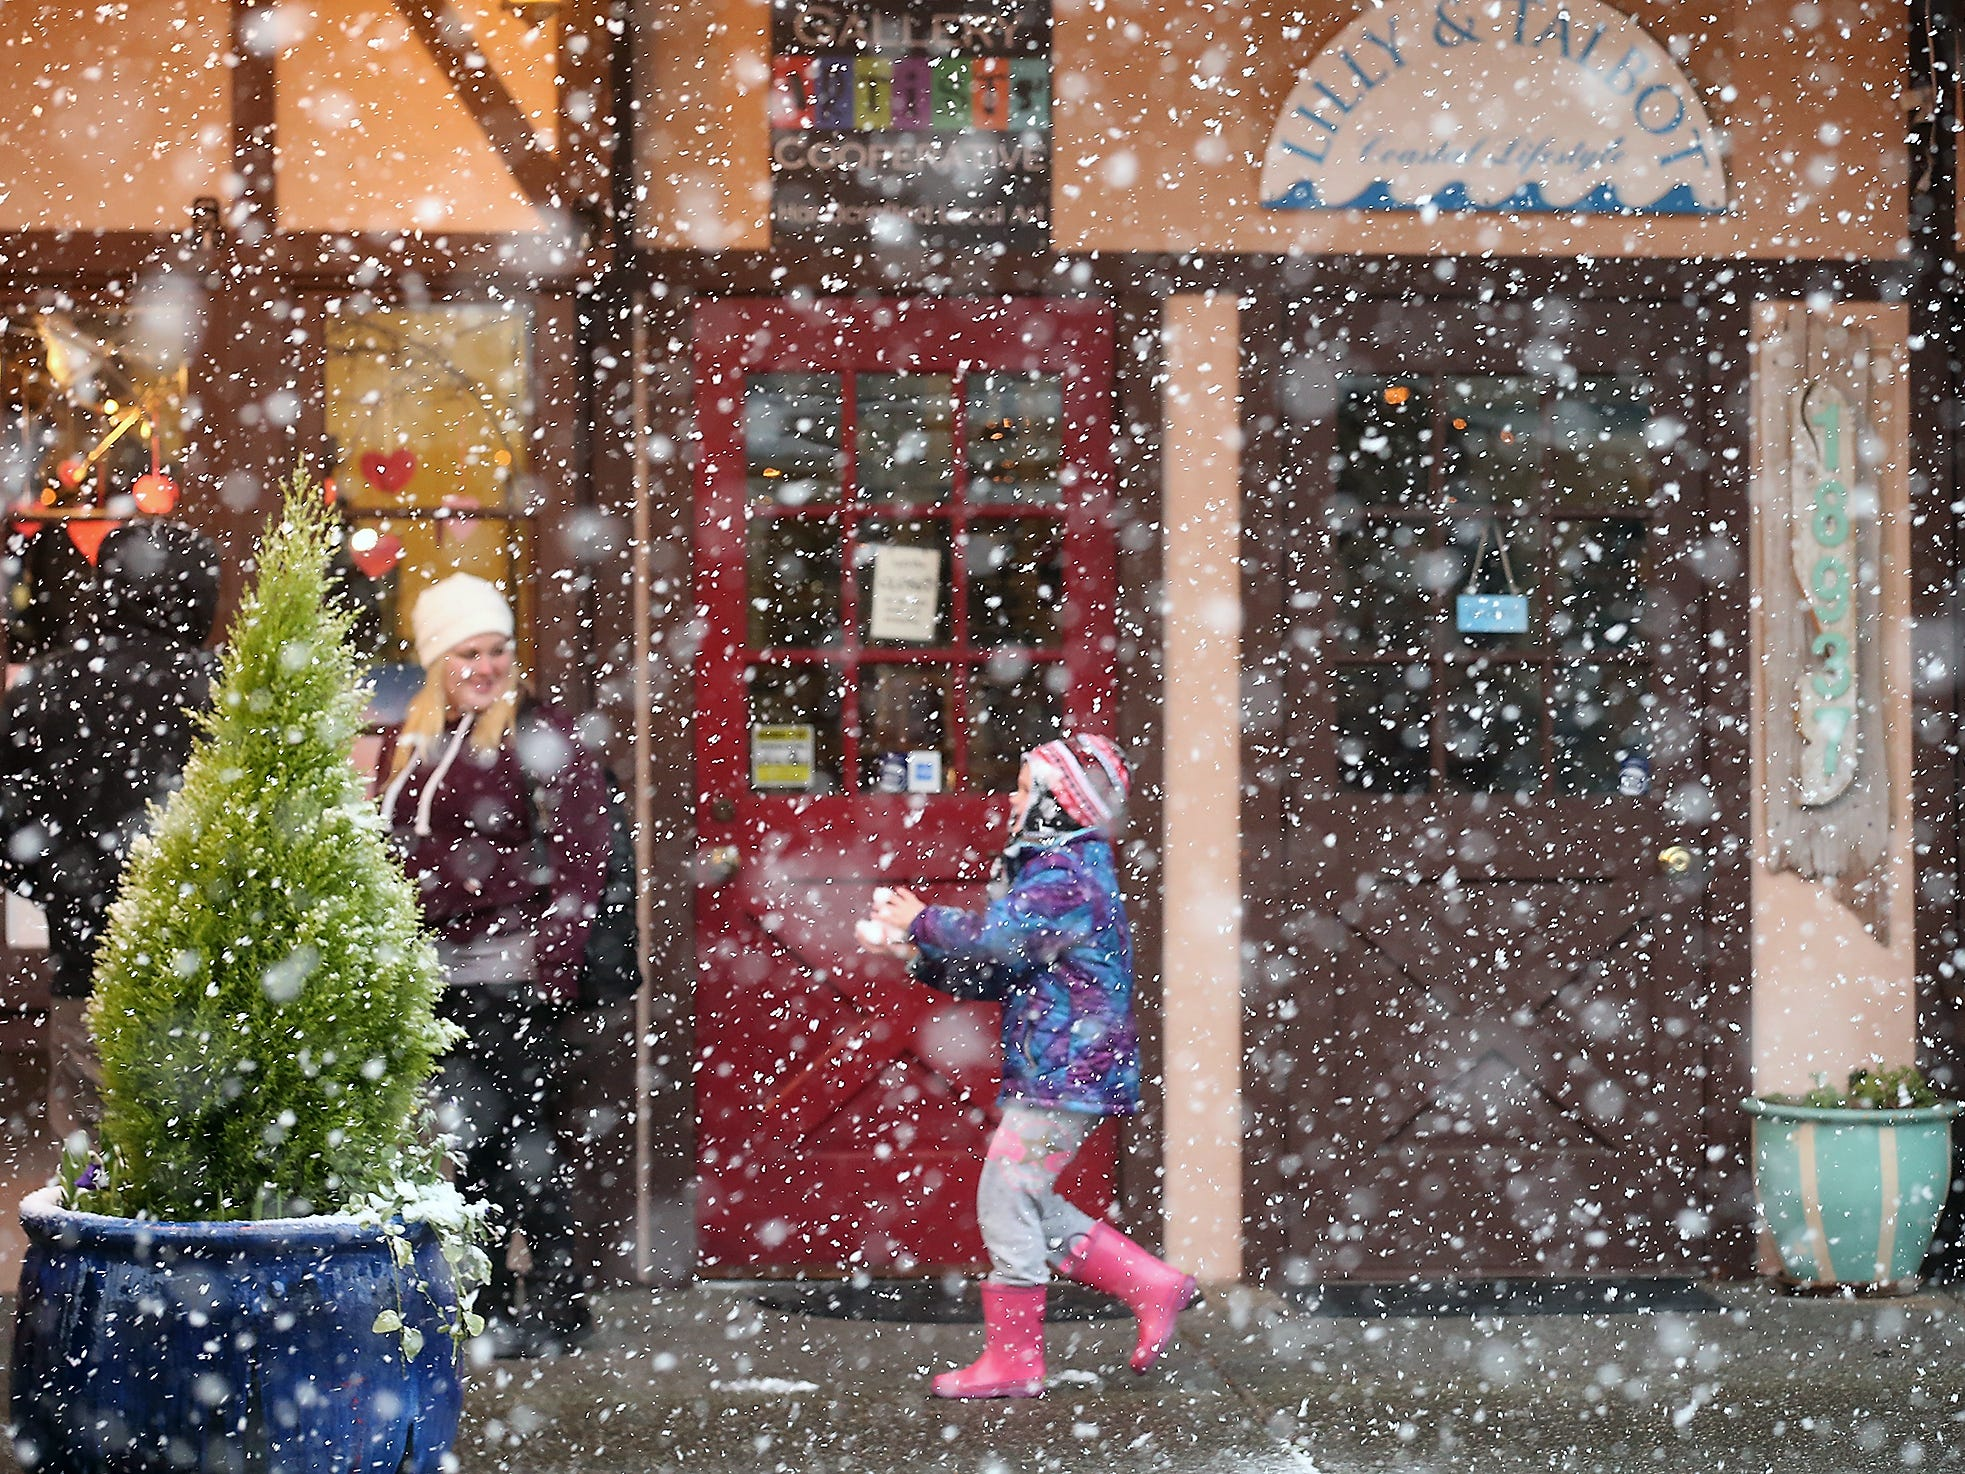 Heavy snowflakes create a painterly scene as pedestrians make their way through the heavy snow in downtown Poulsbo on Sunday, February 3, 2019.